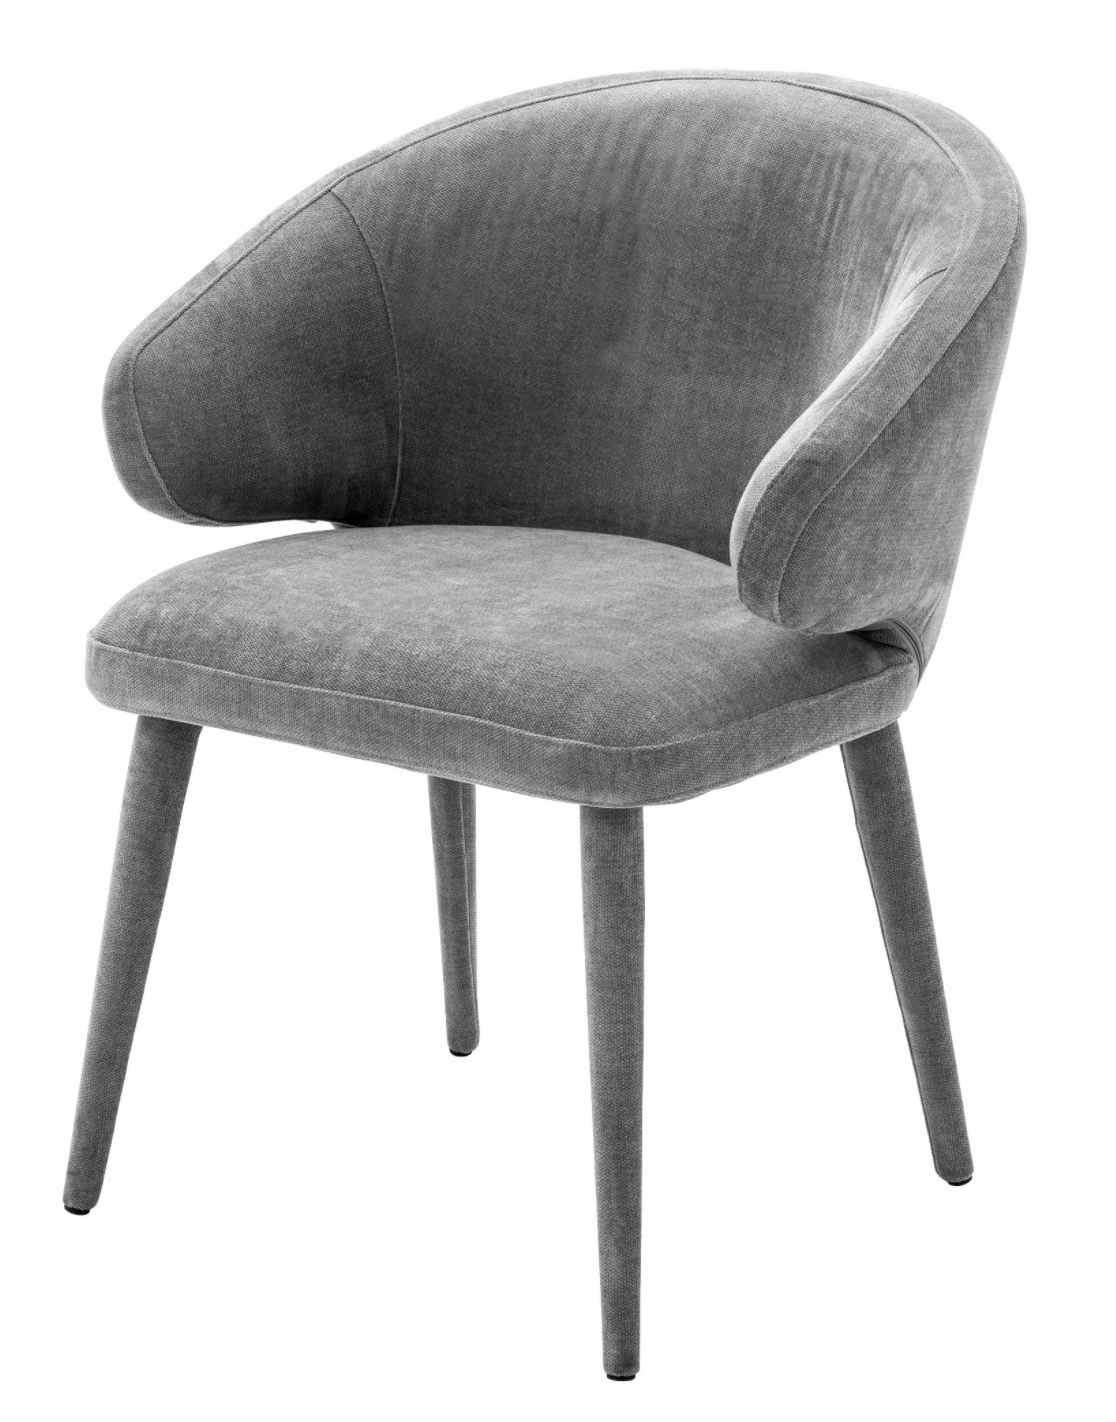 Dining chair Cardinale Clarck Grey